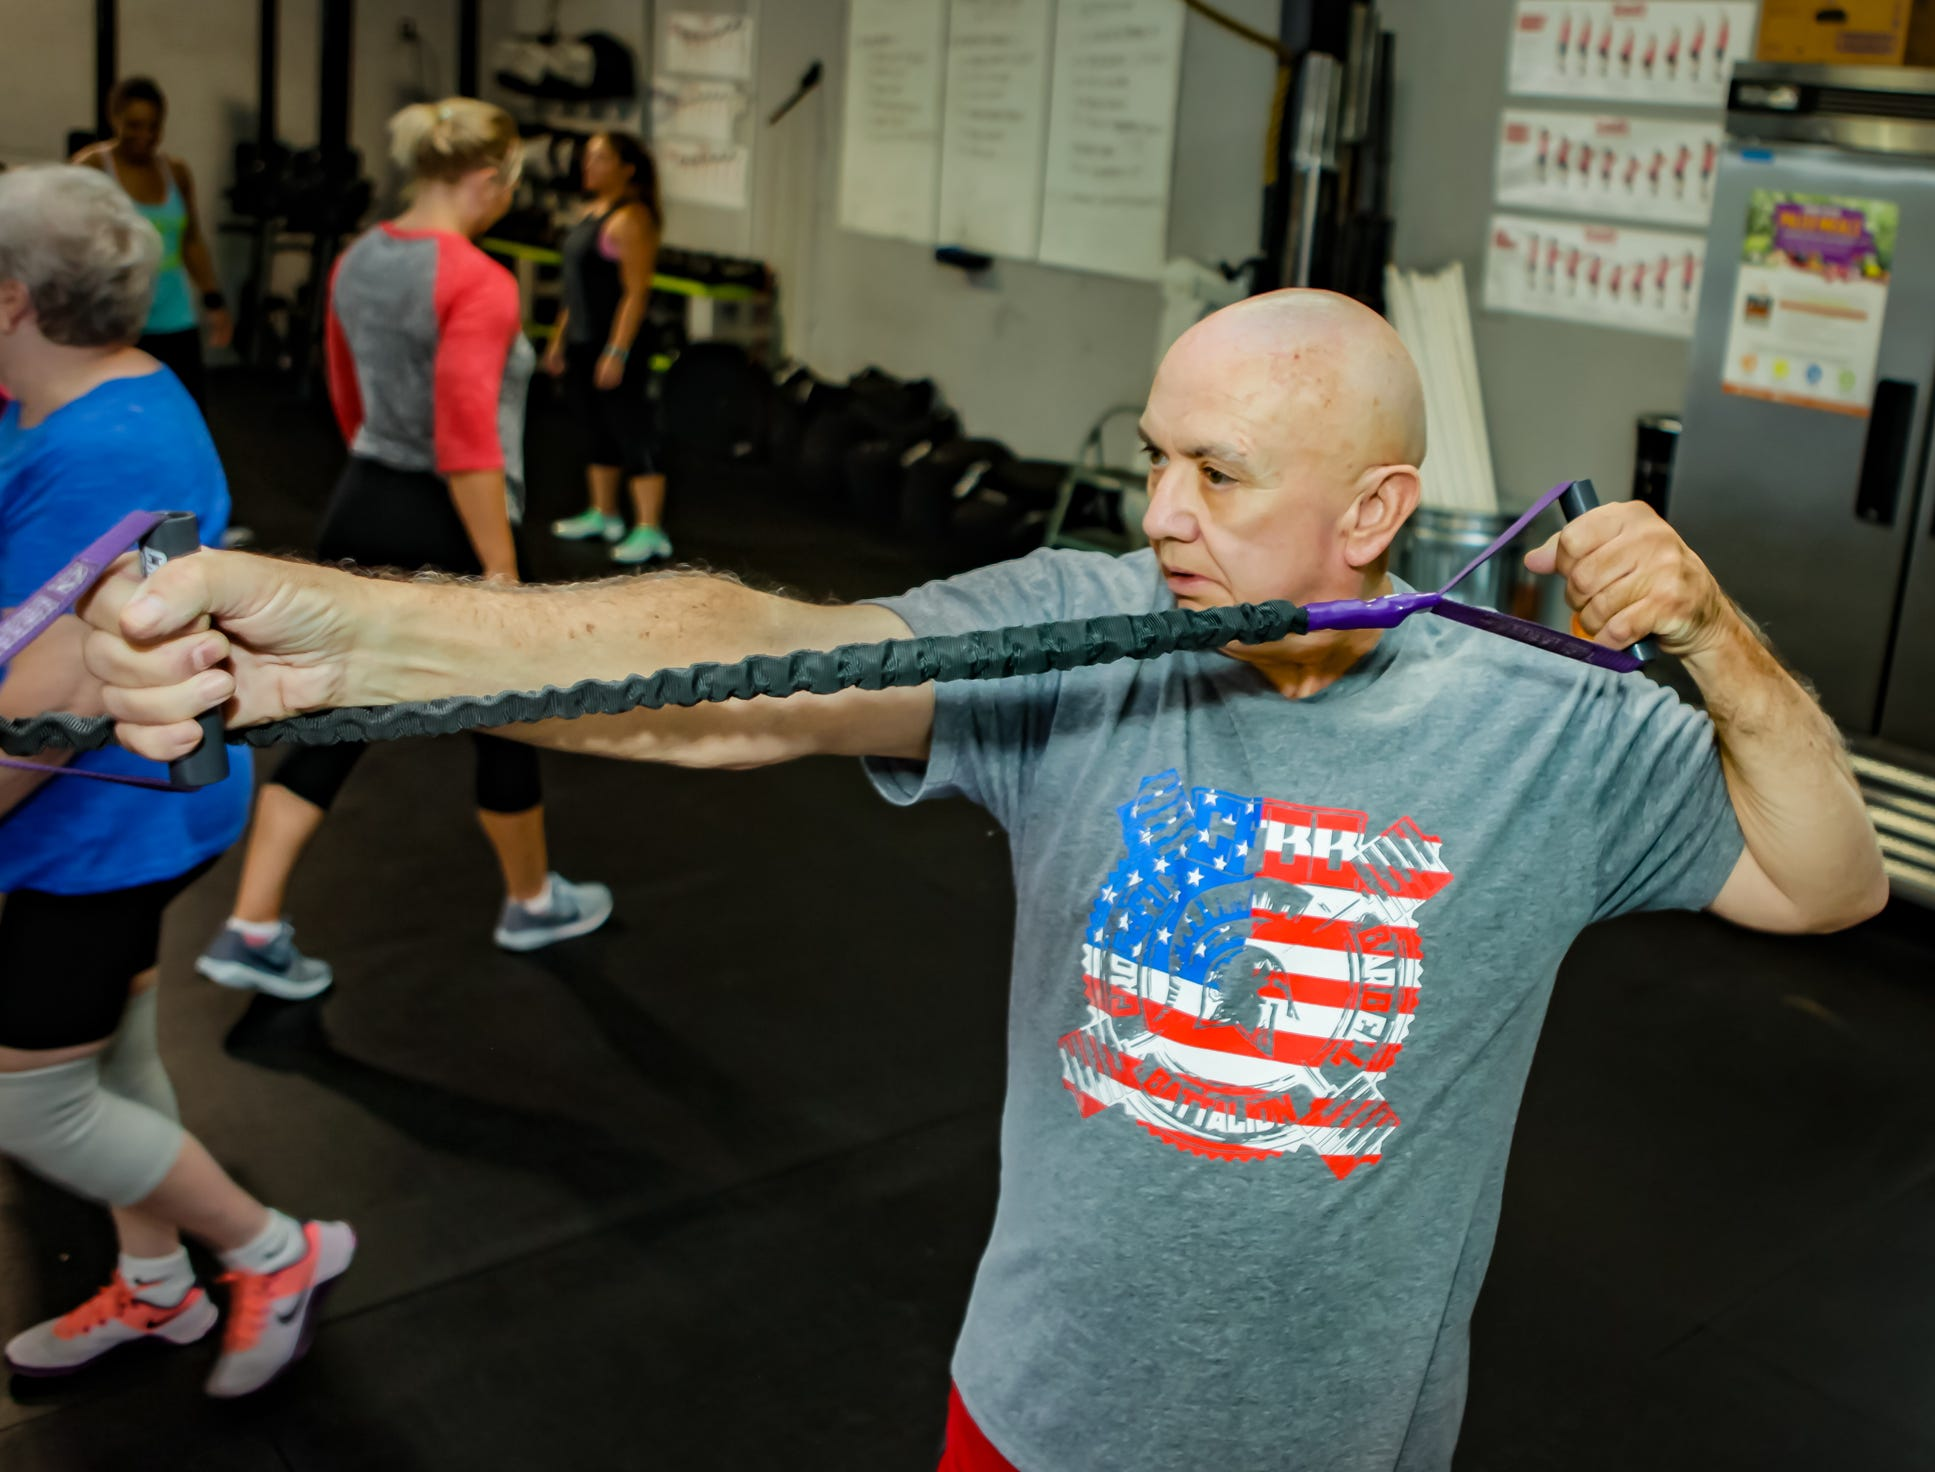 Alton Miles, 72, does a workout using crossover symmetry bands at the CrossFit Barbell Batallion in downtown Murfreesboro.